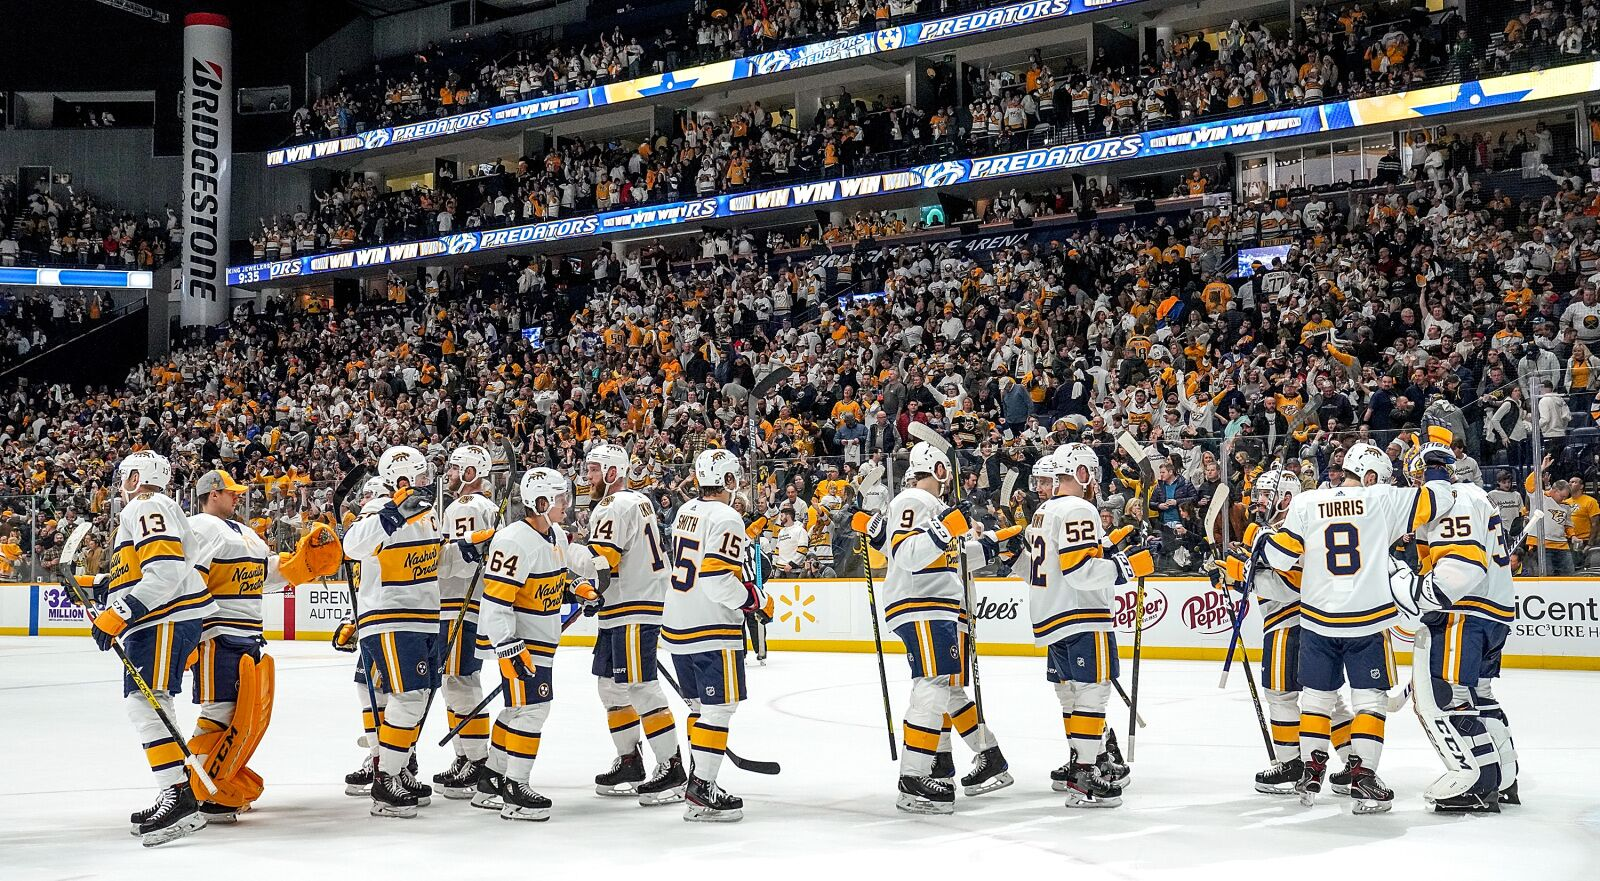 Nashville Predators: It's Time to Dig Deep and Grind it Out